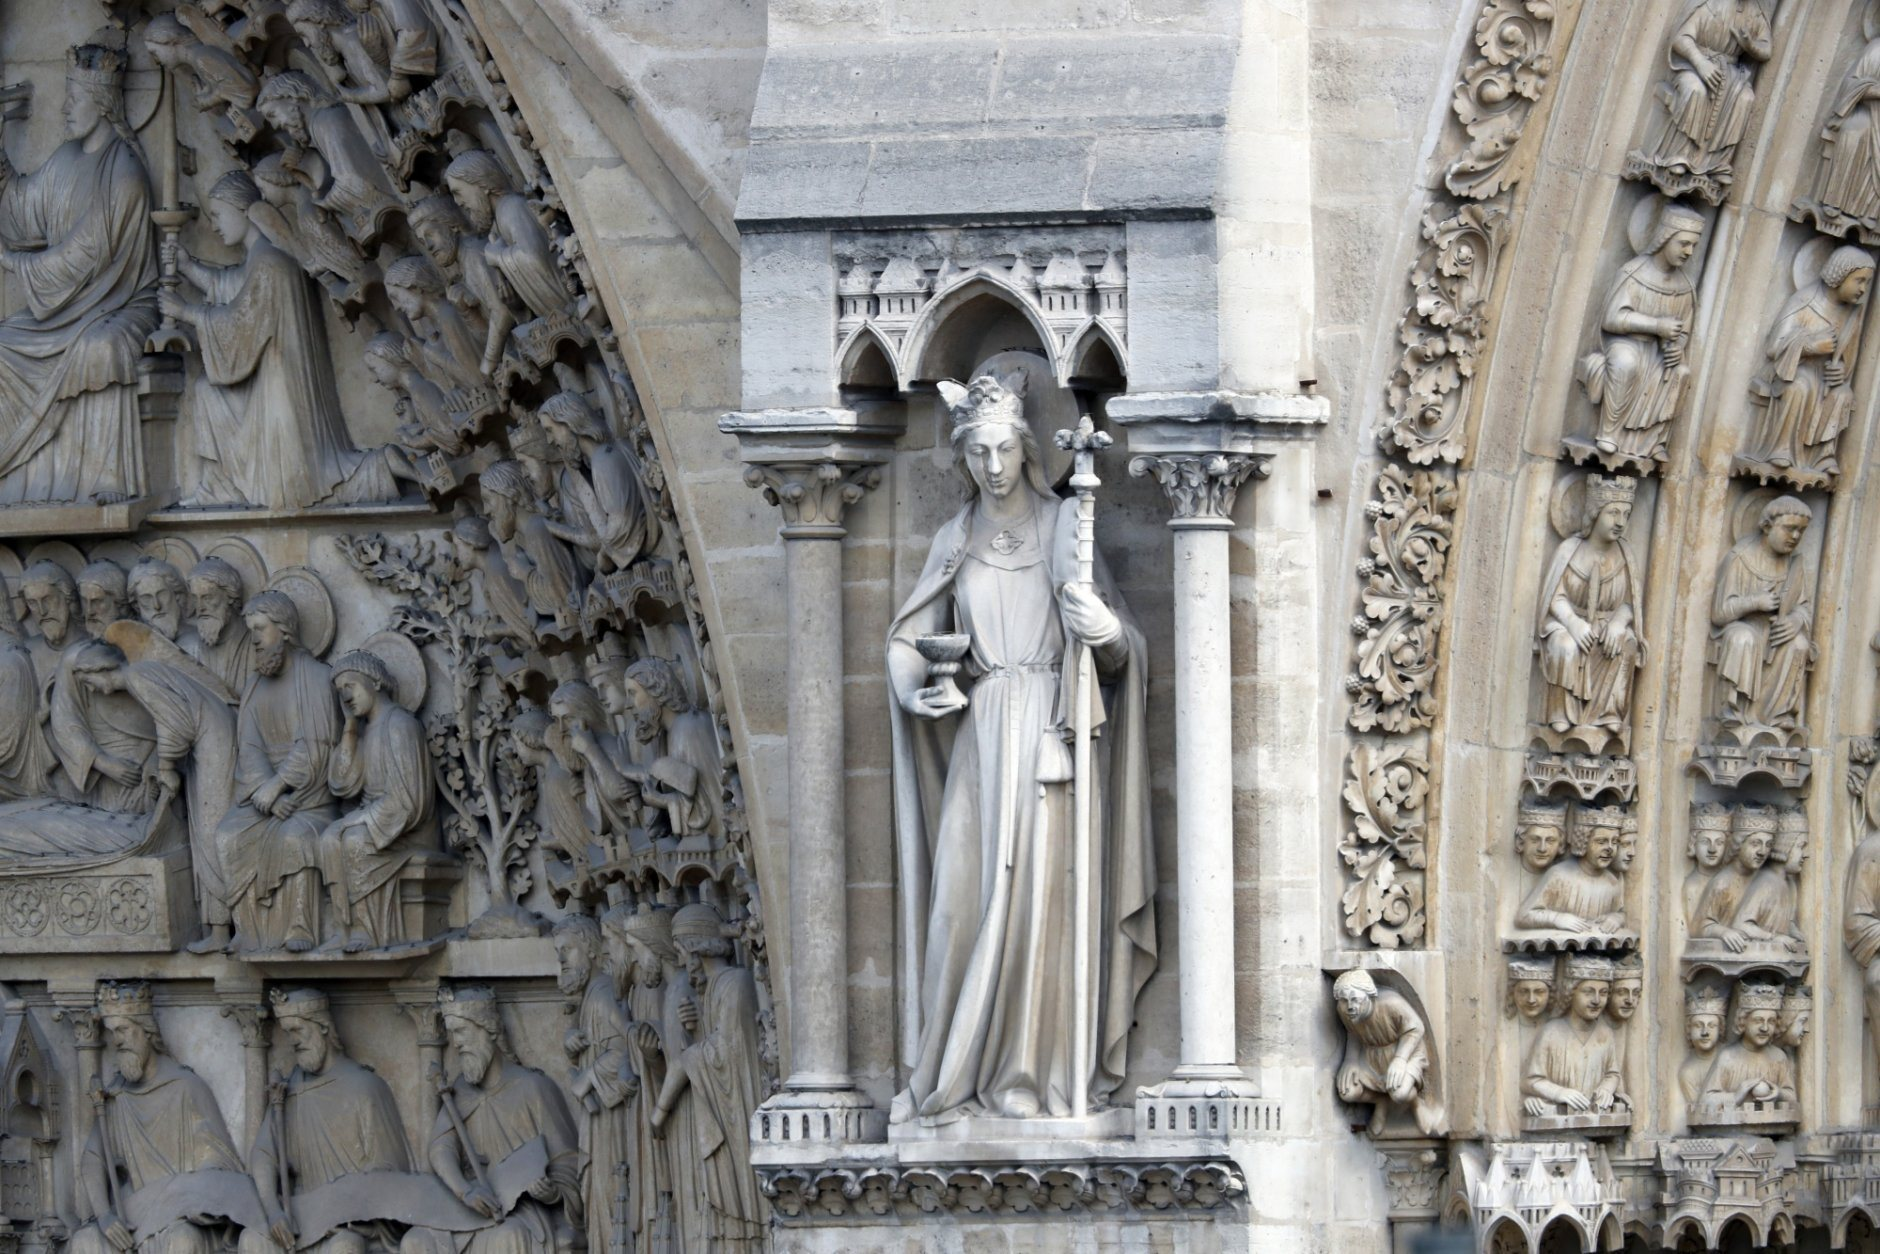 """A statue is pictured just outside Notre Dame cathedral Wednesday, April 17, 2019 in Paris. Notre Dame Cathedral would have been completely burned to the ground in a """"chain reaction collapse"""" had firefighters not moved rapidly in deploying their equipment to battle the blaze racing through the landmark monument, a Paris official said Wednesday. (AP Photo/Thibault Camus)"""